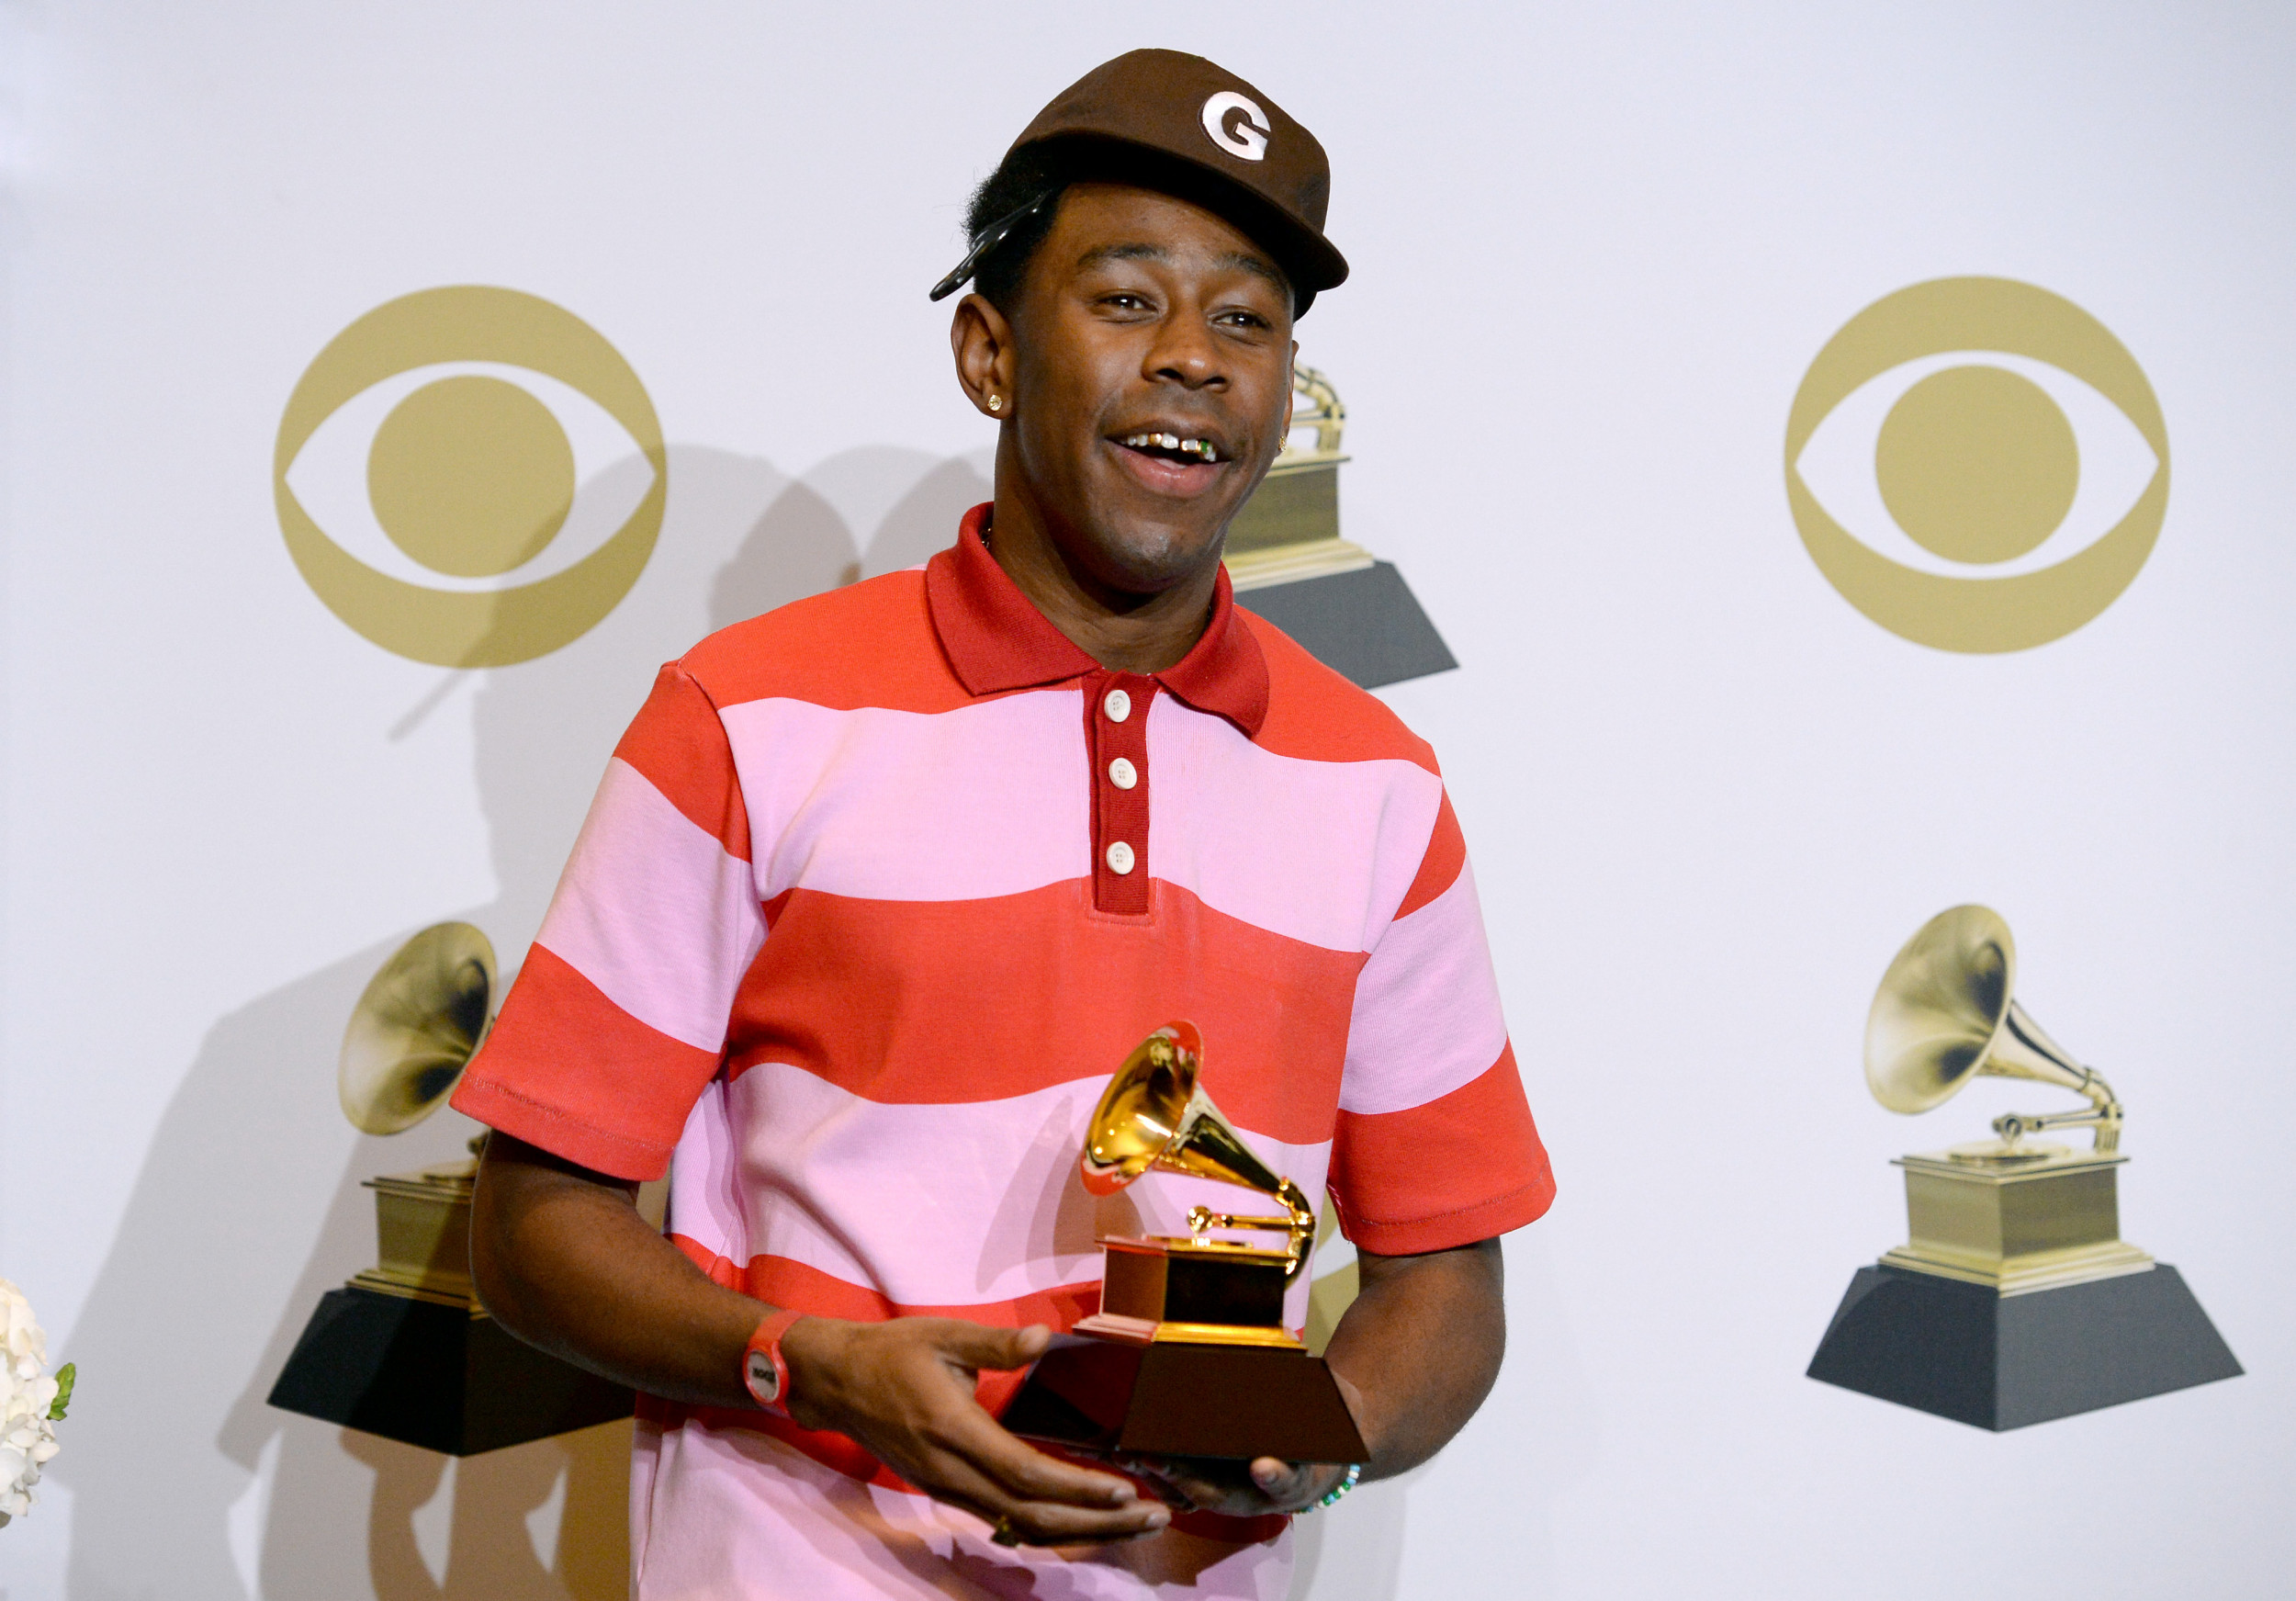 Tyler, the Creator reveals he's never voted, but now he's seen the 'light'